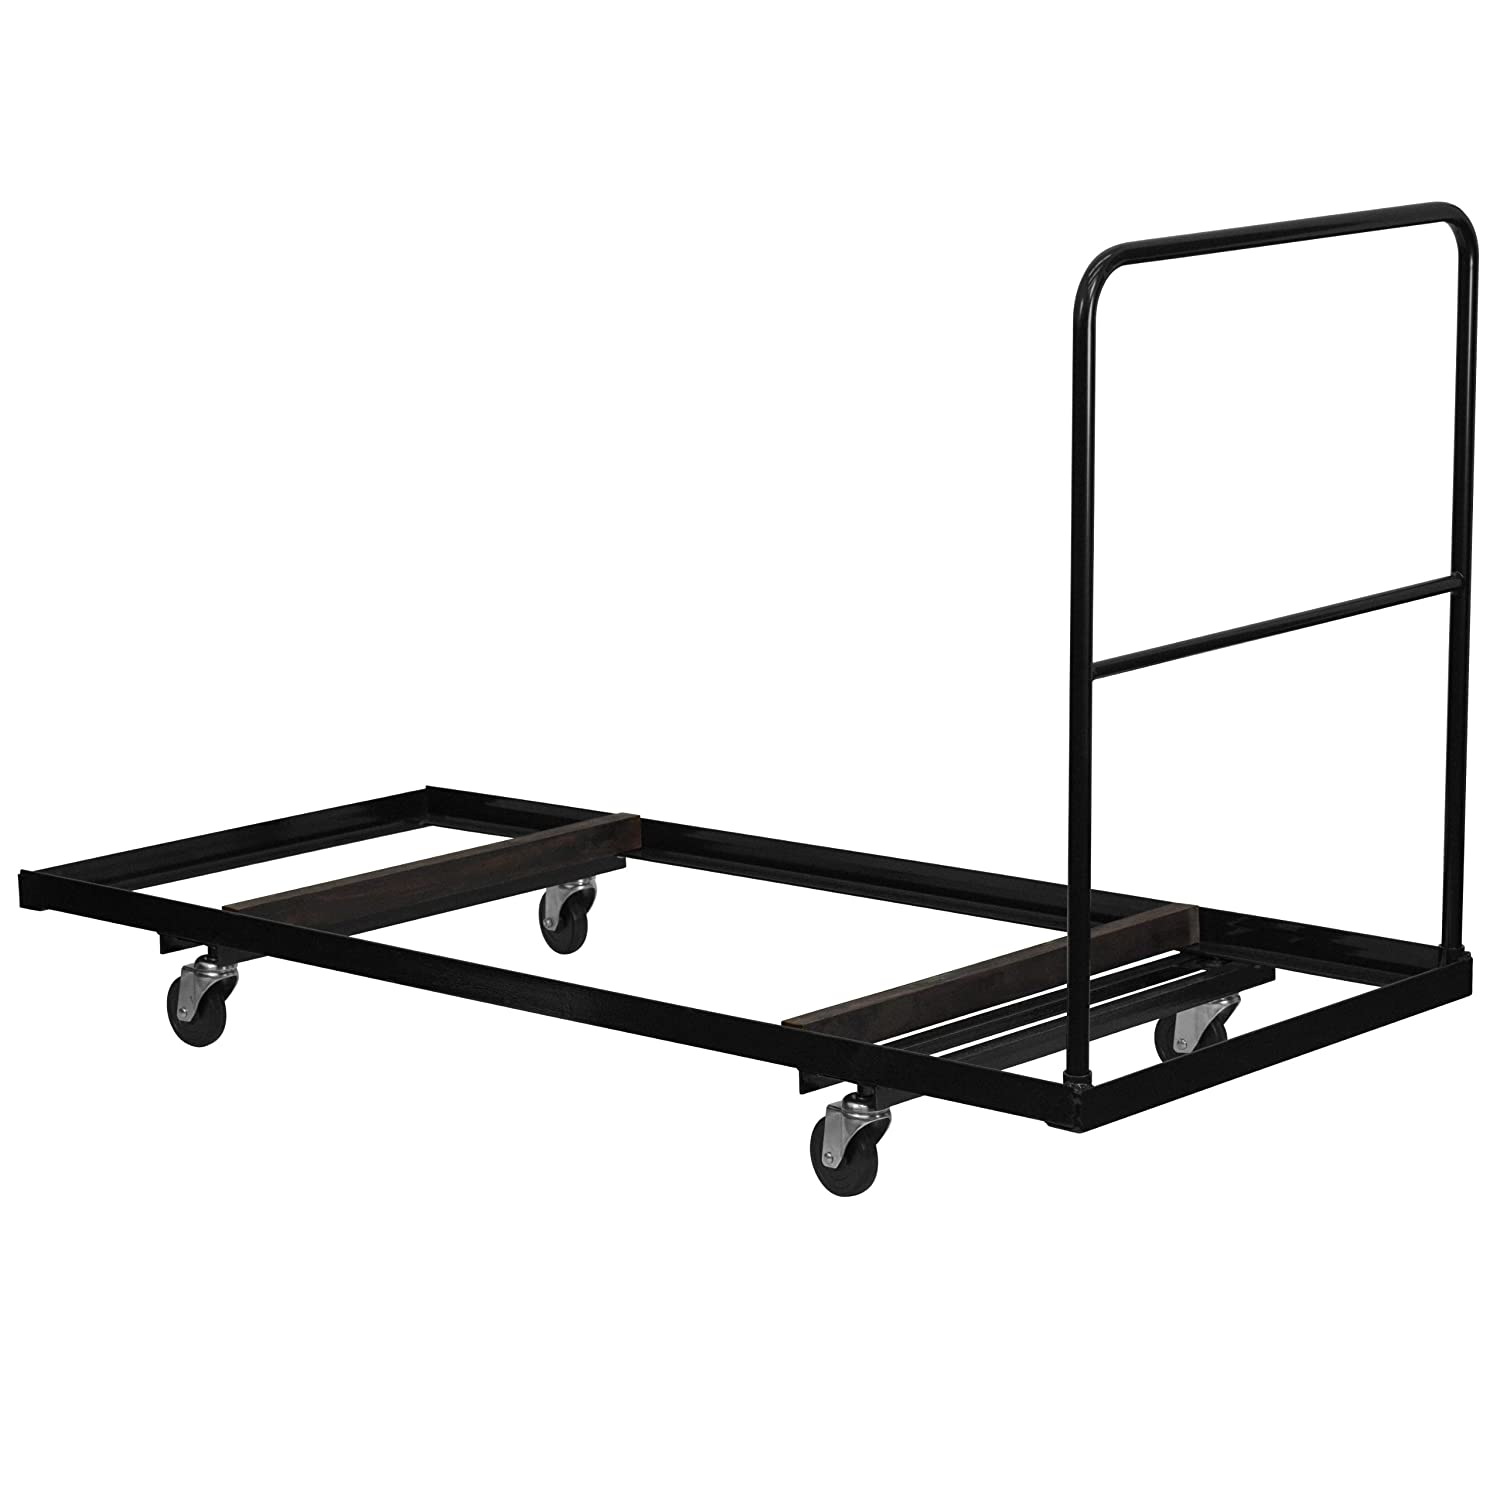 Amazon.com: Flash Furniture Black Folding Table Dolly For 30u0027u0027W X 72u0027u0027D  Rectangular Folding Tables: Kitchen U0026 Dining